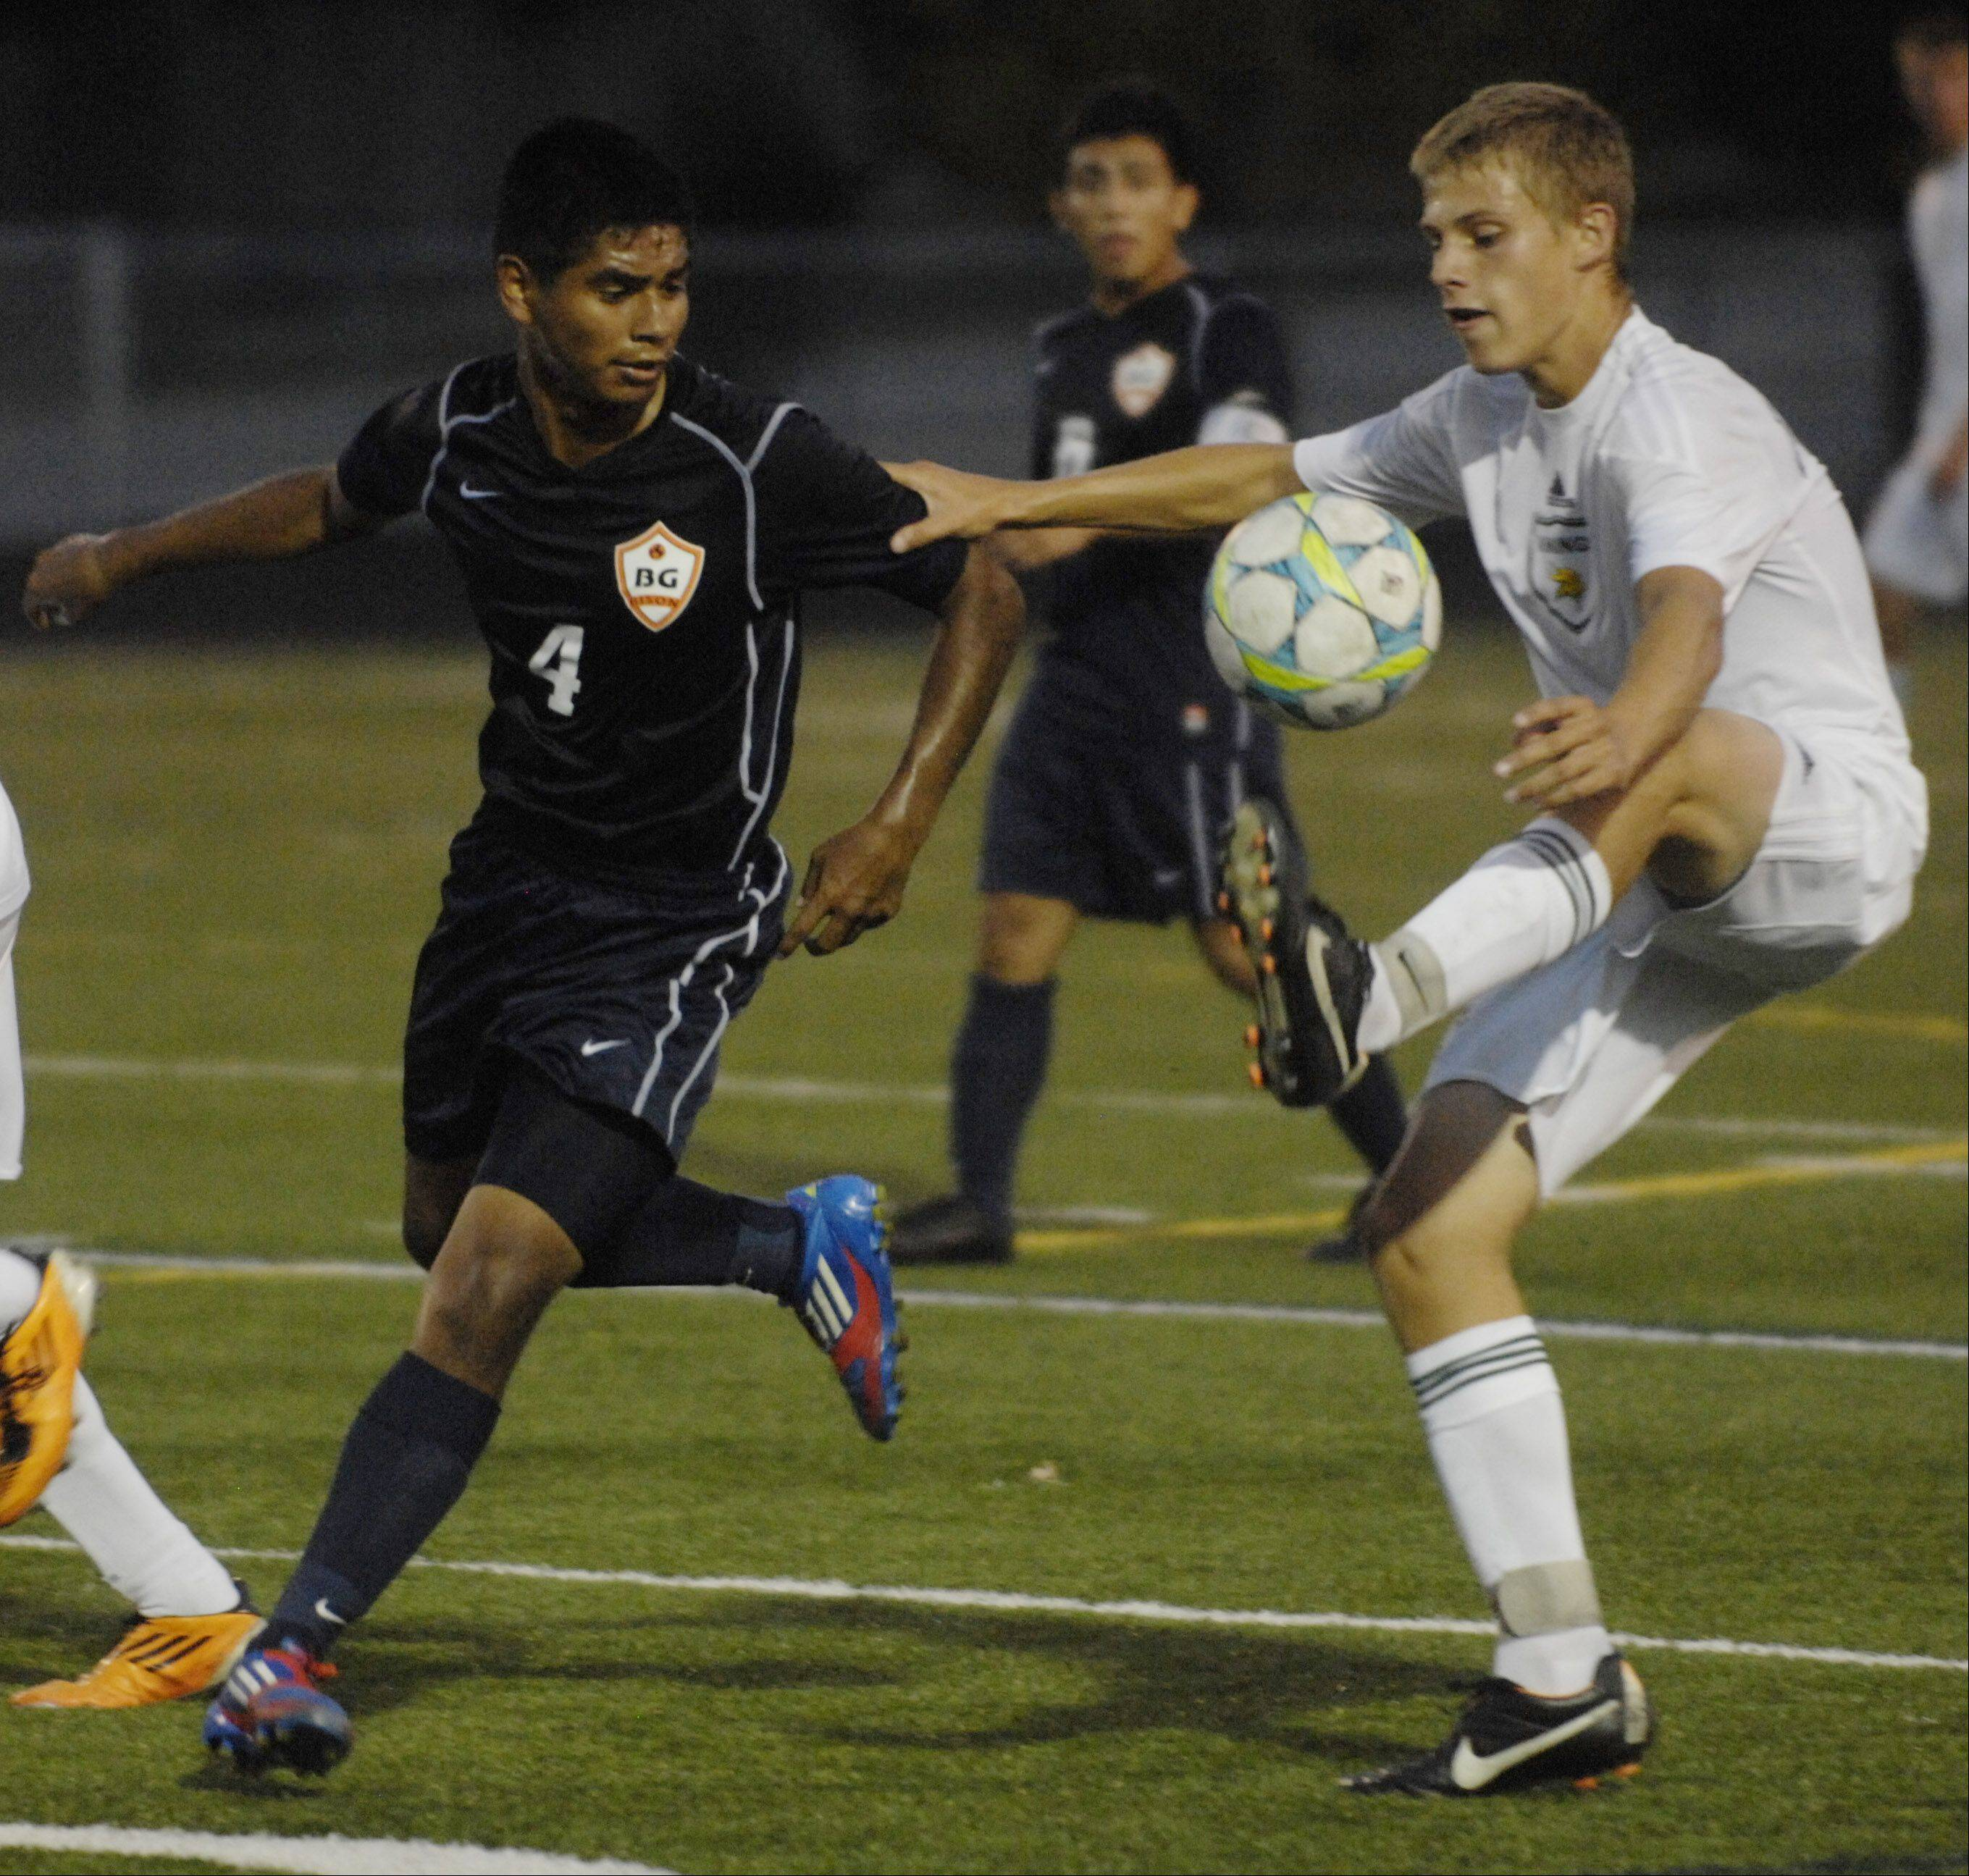 Fremd's Zach Schoffstall, right, tries to maintain possession of the ball in front of Buffalo Grove's Allan Santiaguillo during Tuesday's game.